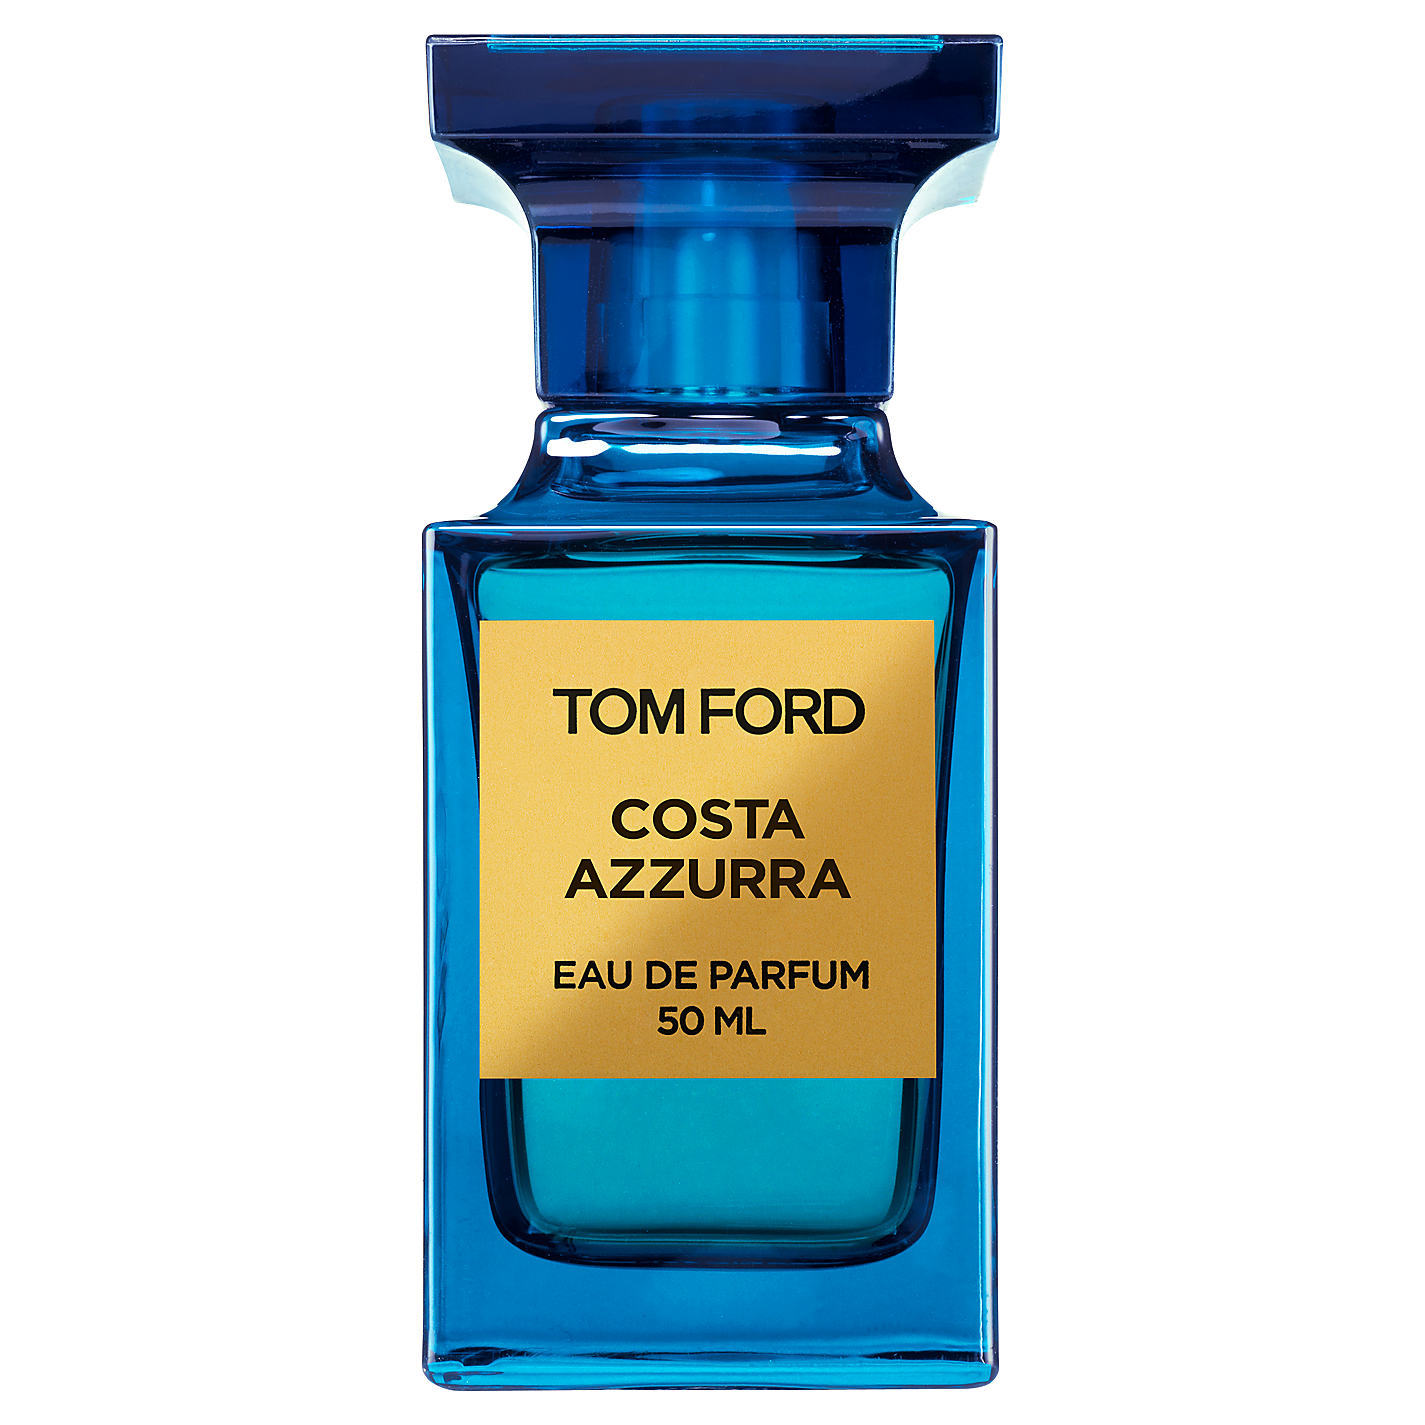 COSTA AZZURRA by TOM FORD 5ml TRAVEL SPRAY Mandarin Celery seed Perfume